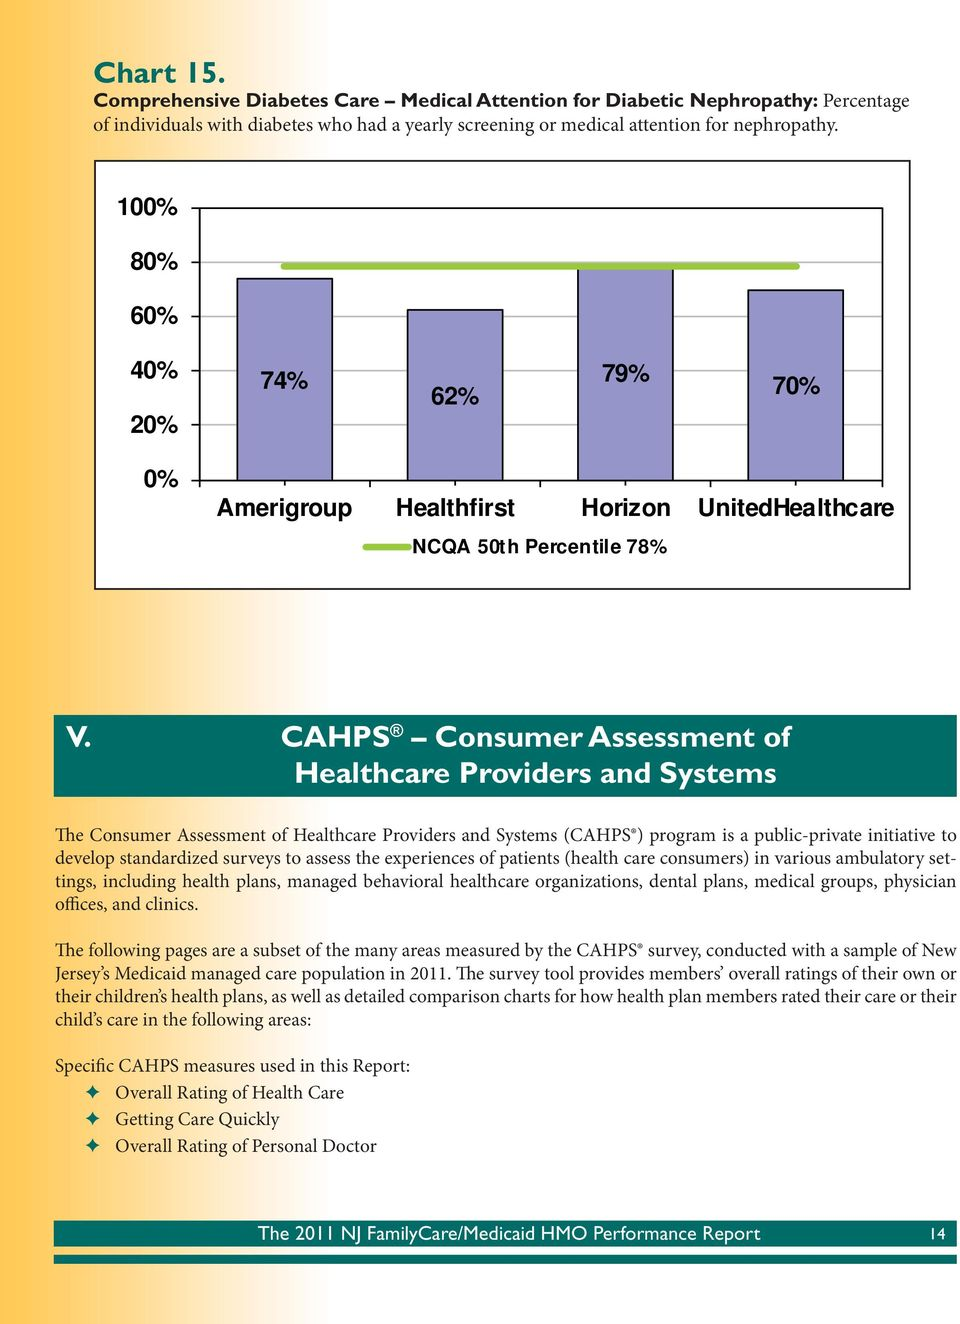 CAHPS Consumer Assessment of Healthcare Providers and Systems The Consumer Assessment of Healthcare Providers and Systems (CAHPS ) program is a public-private initiative to develop standardized